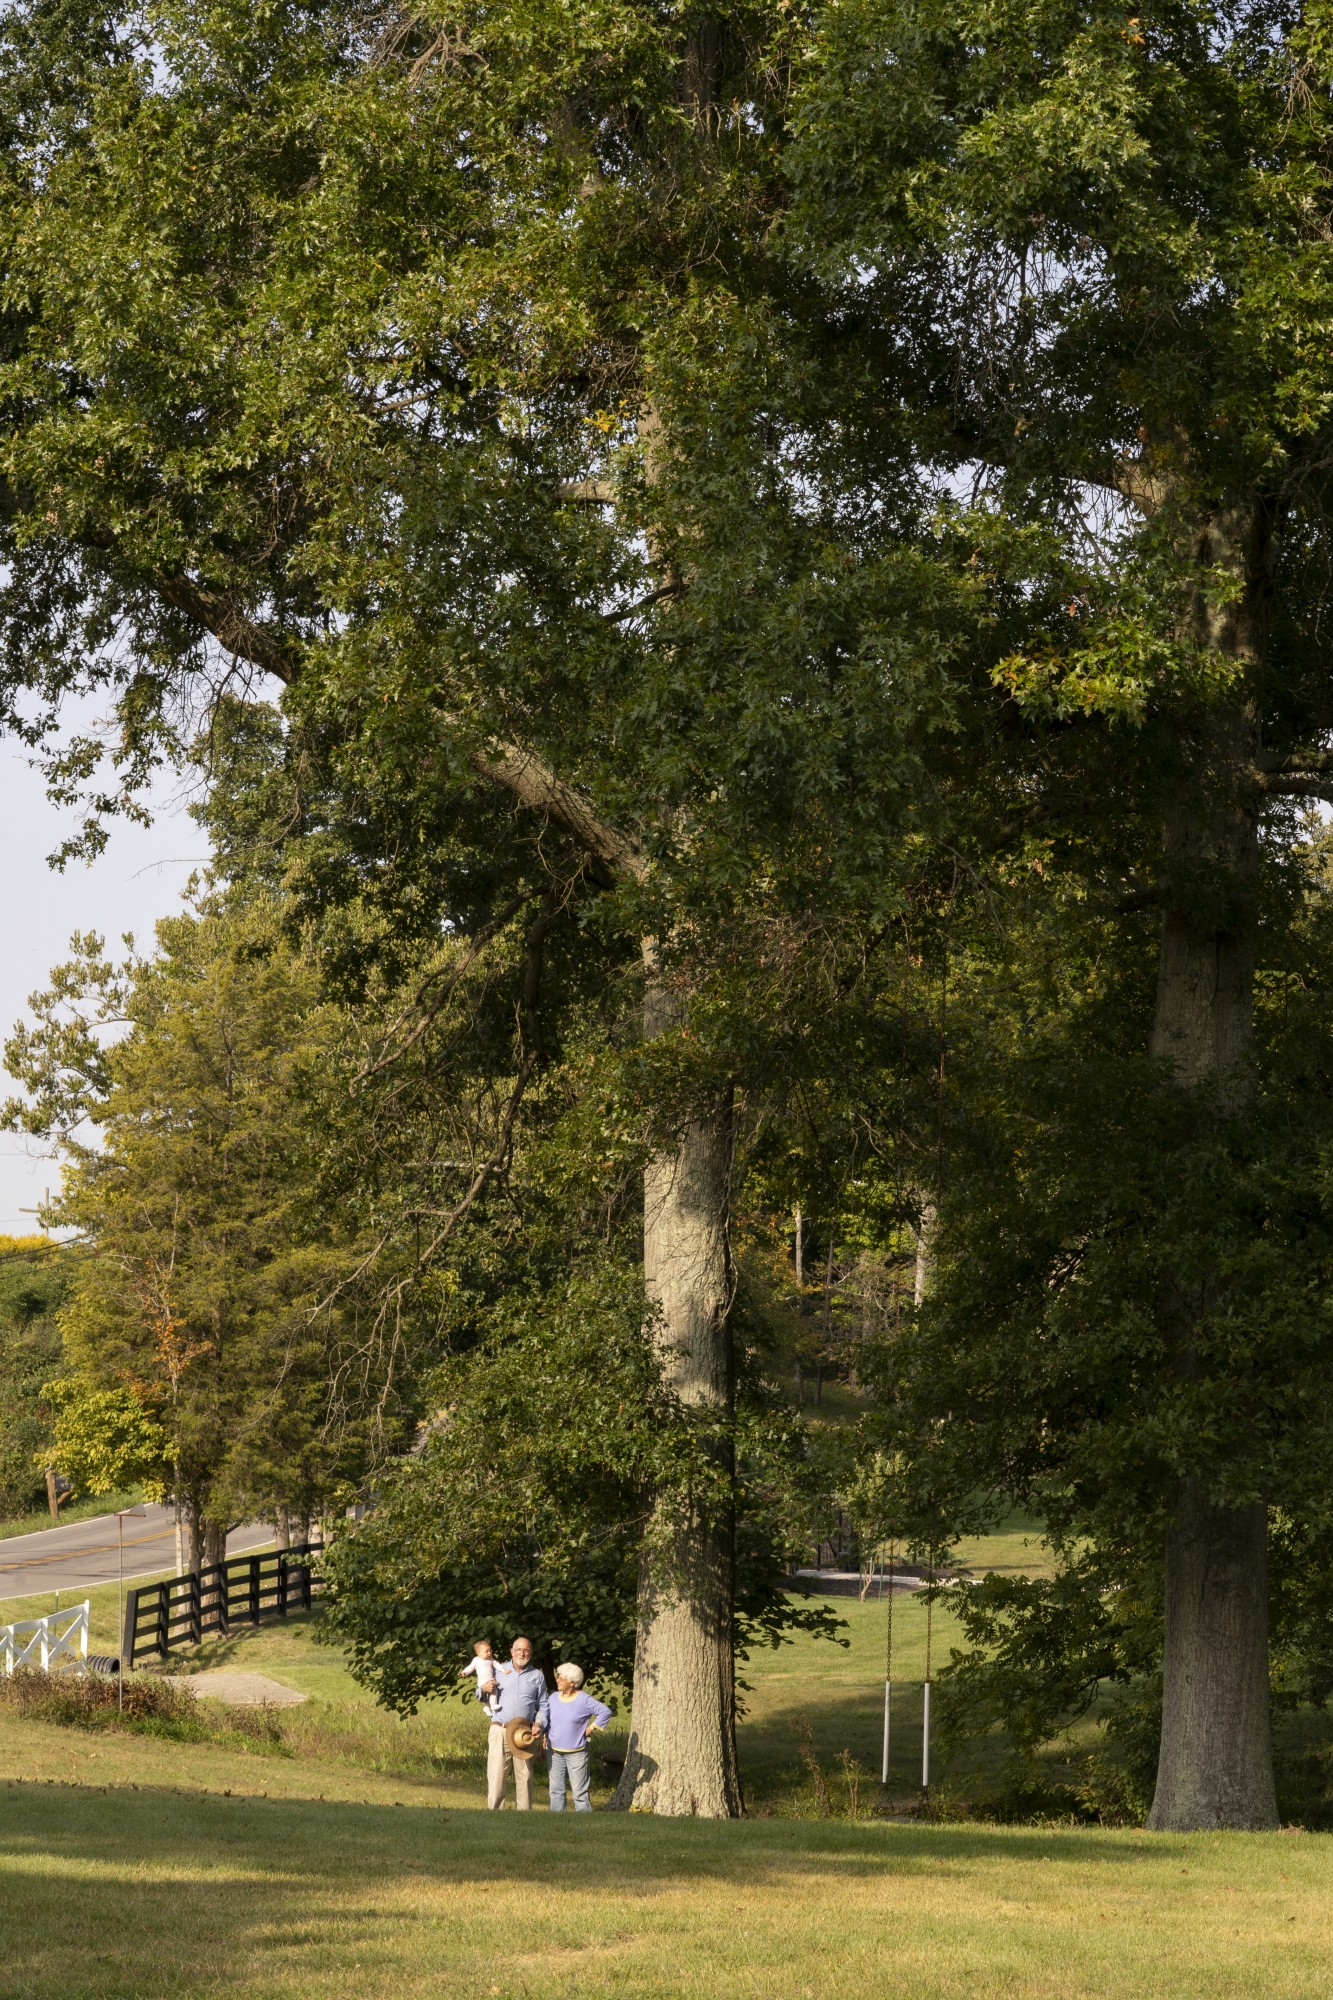 Pat Hill, 66, Norah Jane Hill, 9 months, and Becky Hill, 69, of Loveland, Ohio, with their Oak Trees on Wednesday, Sept. 23, 2020.